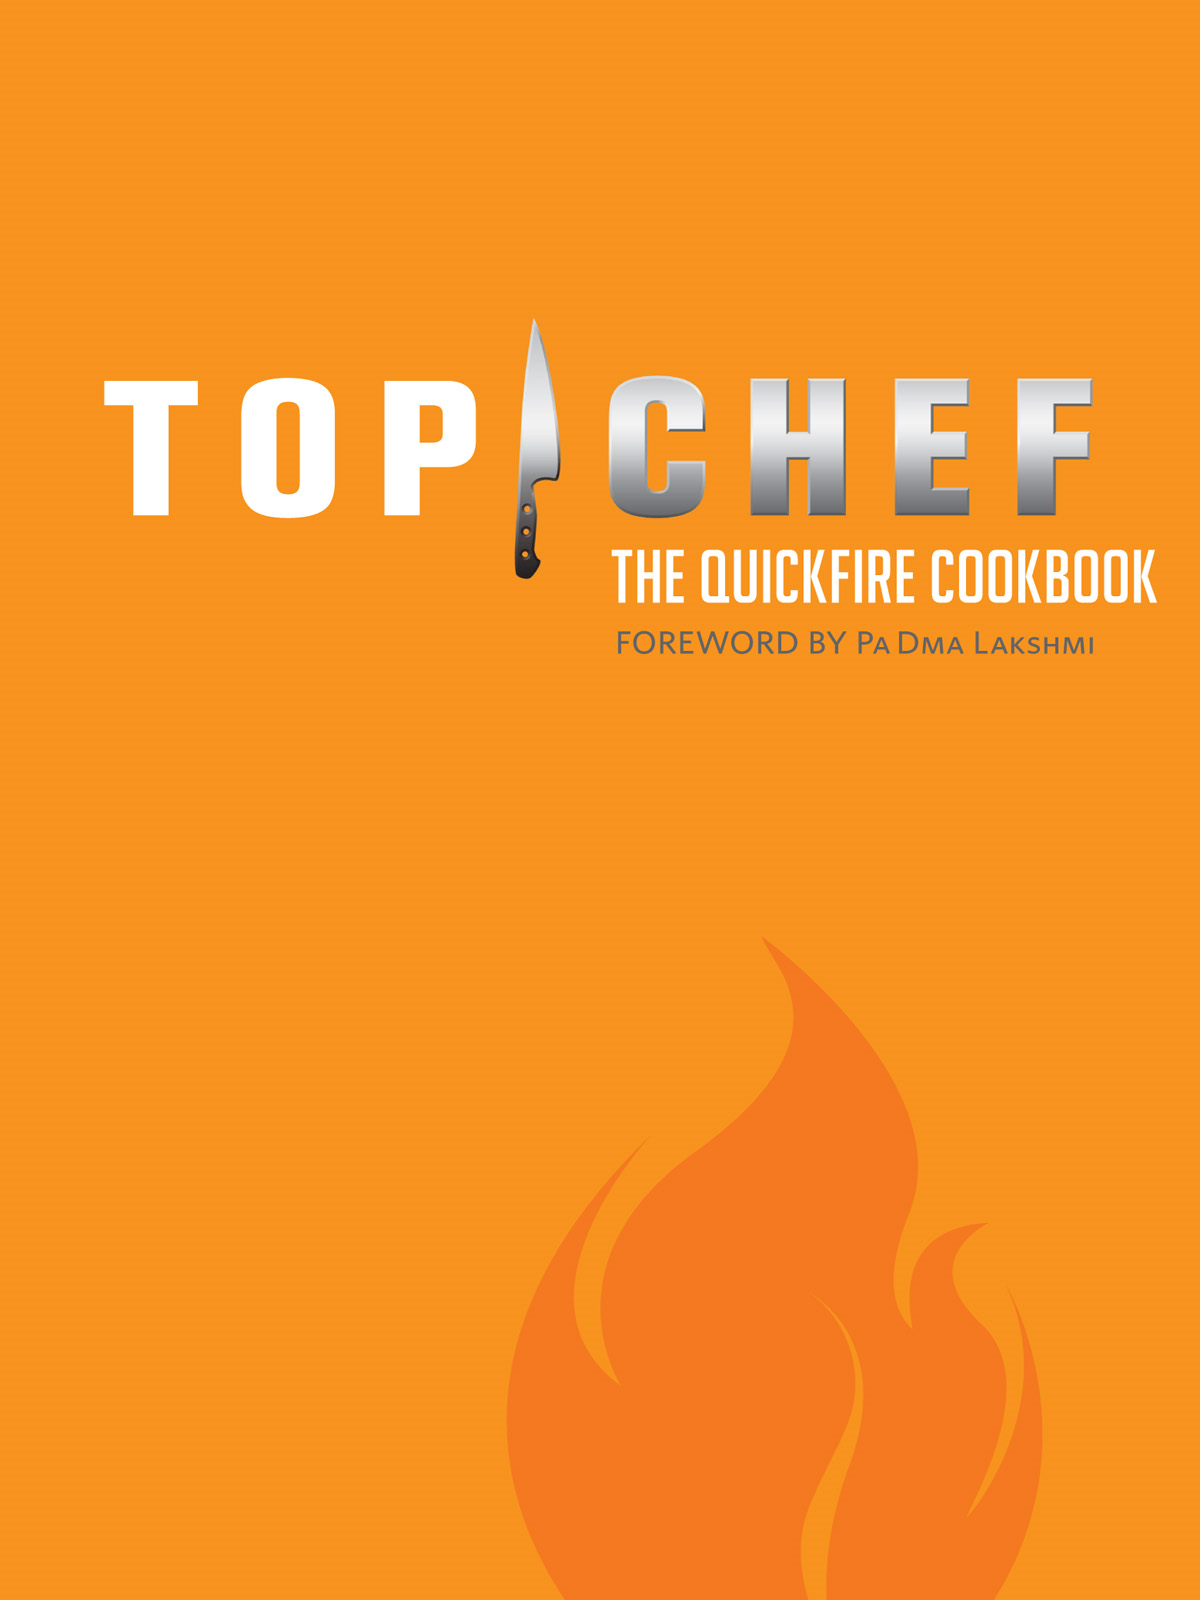 Top Chef: The Quickfire Cookbook